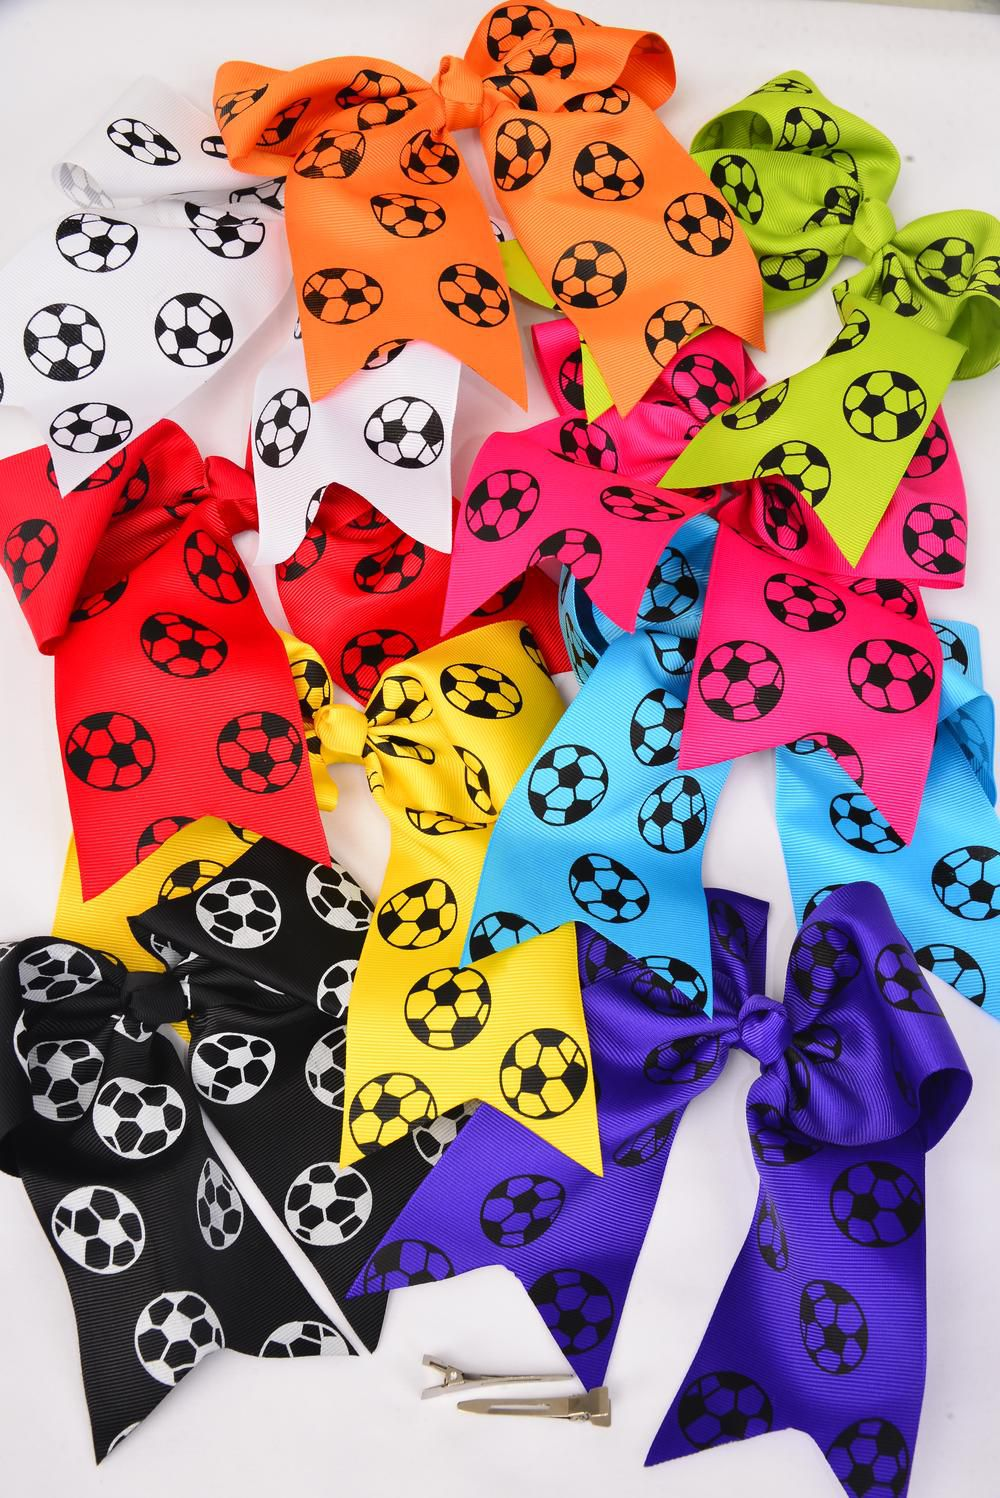 "Hair Bow Soccer Ball Print Extra Jumbo Long Tail Alligator Clip Grosgrain Bow-tie Multi/DZ **Multi** Alligator Clip,Size-6.5""x 6"" Wide,2 White,2 Yellow,2 Blue,2 Fuchsia,2 Purple,1 Orange,1 Limr,7 Color Asst,Clear Strip & UPC Code"